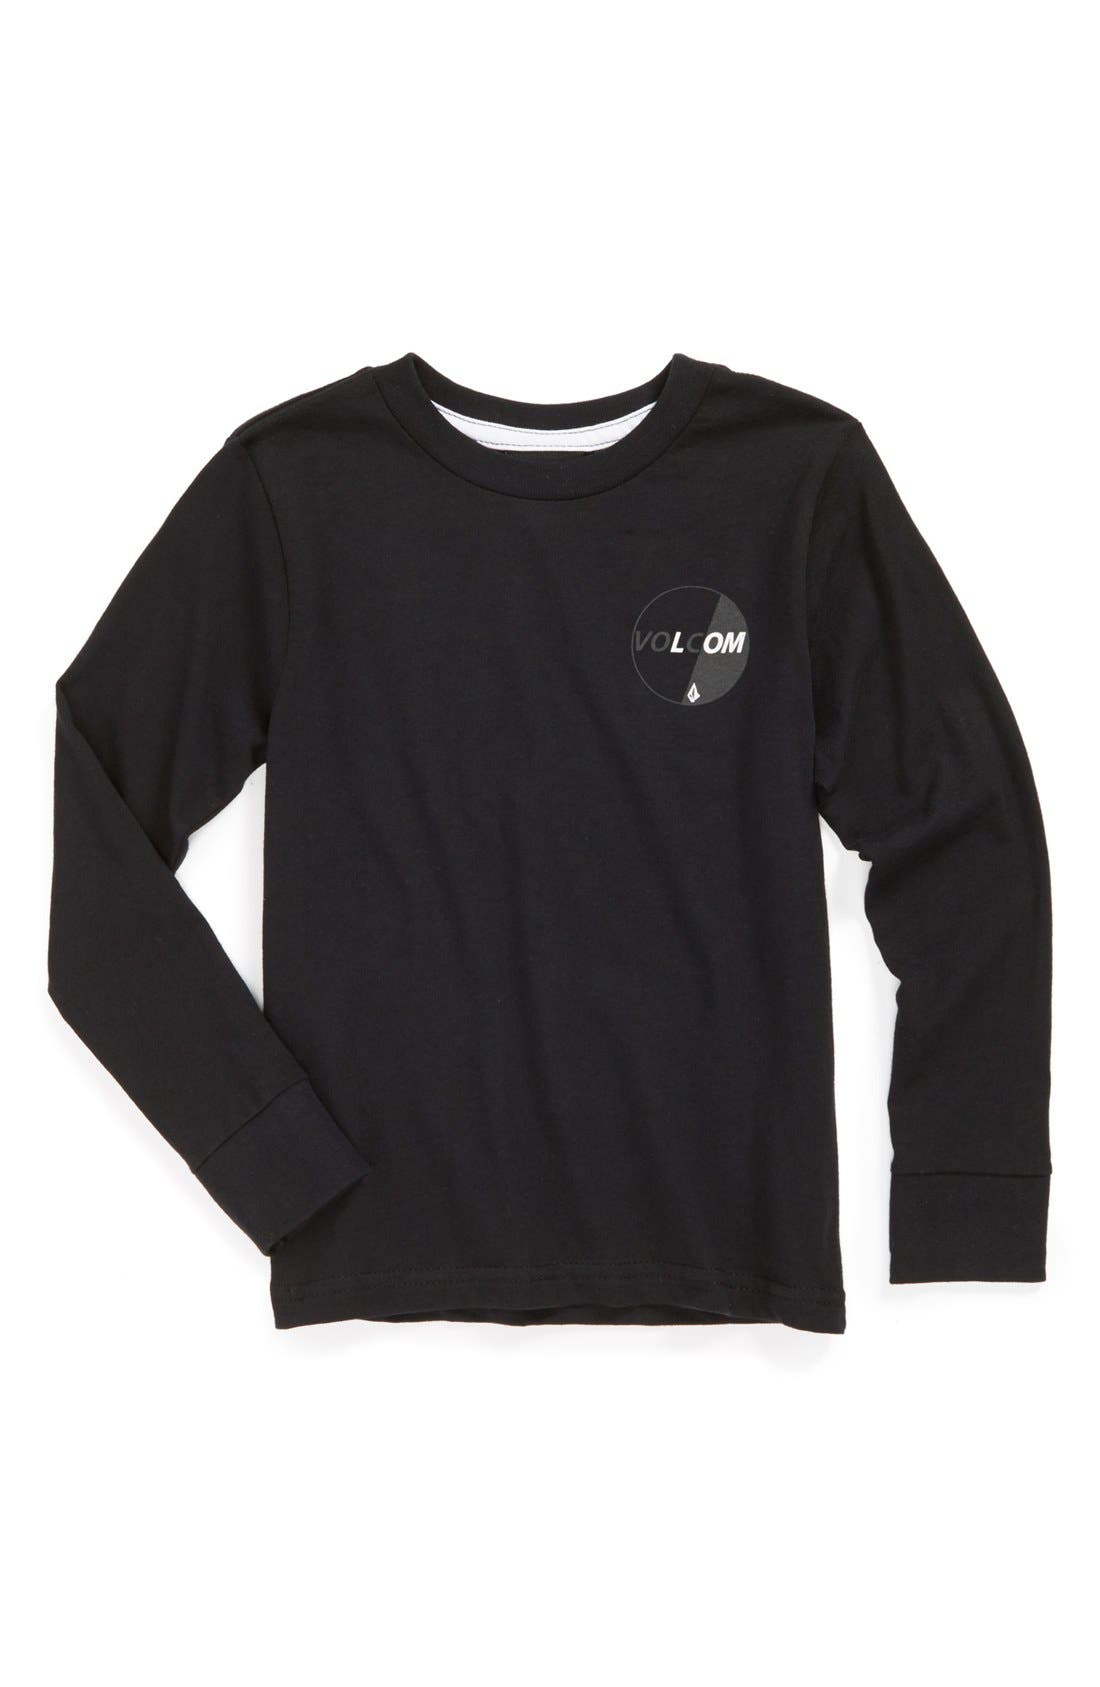 Alternate Image 1 Selected - Volcom 'Gummy Stone' Long Sleeve T-Shirt (Little Boys)